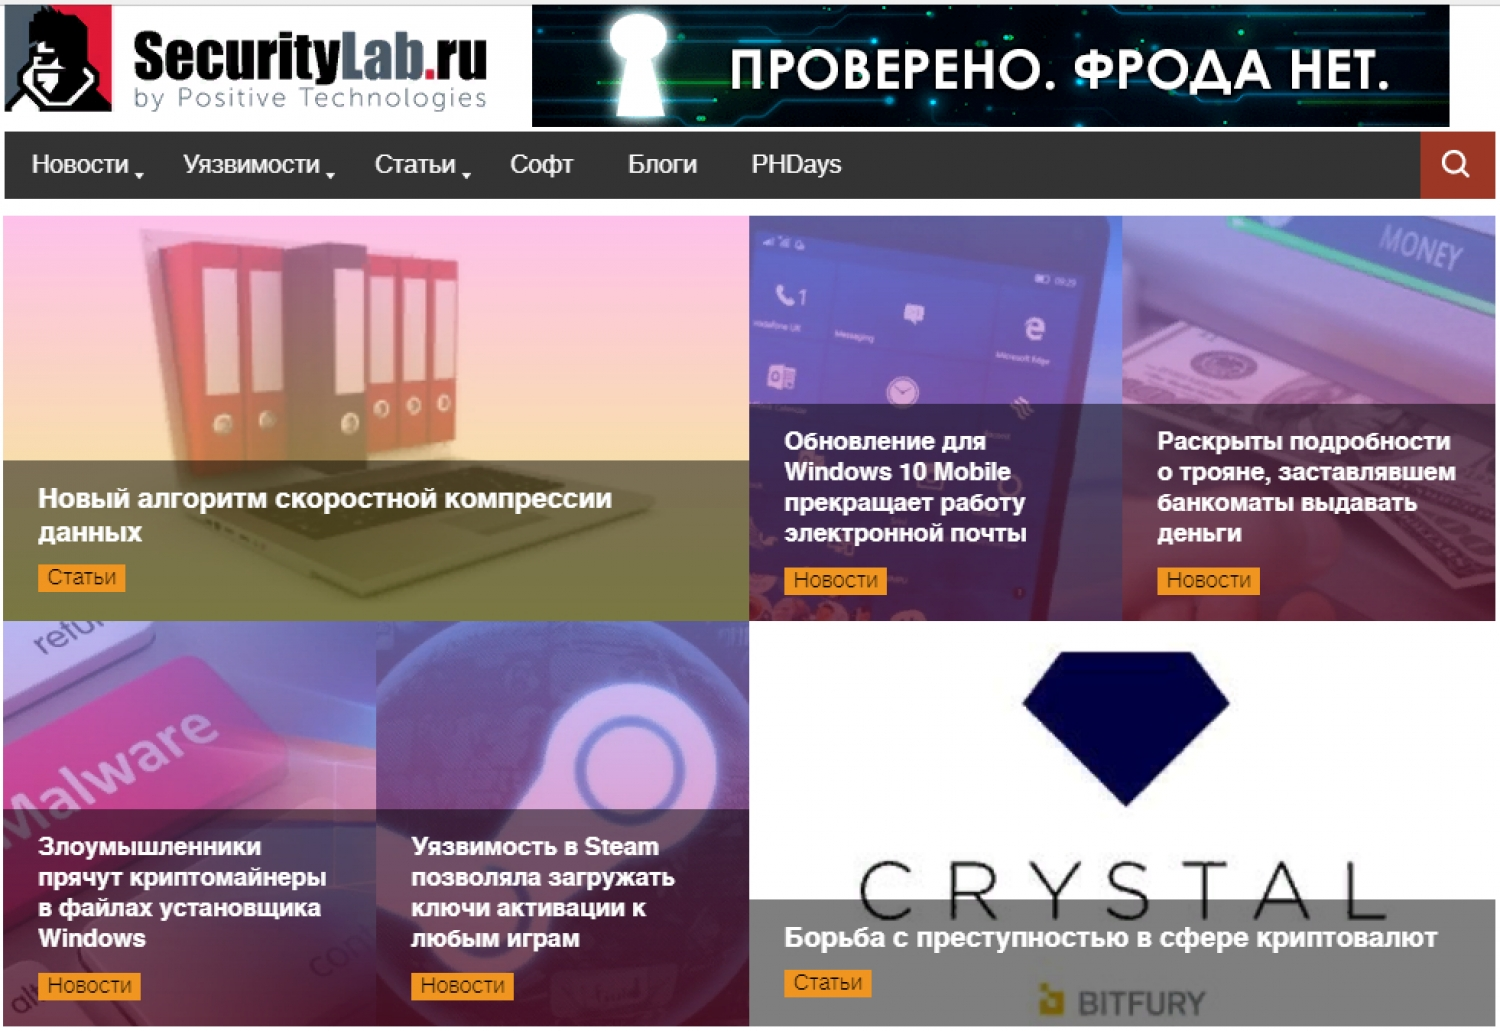 ARTICLES ON SECURITYLAB.RU